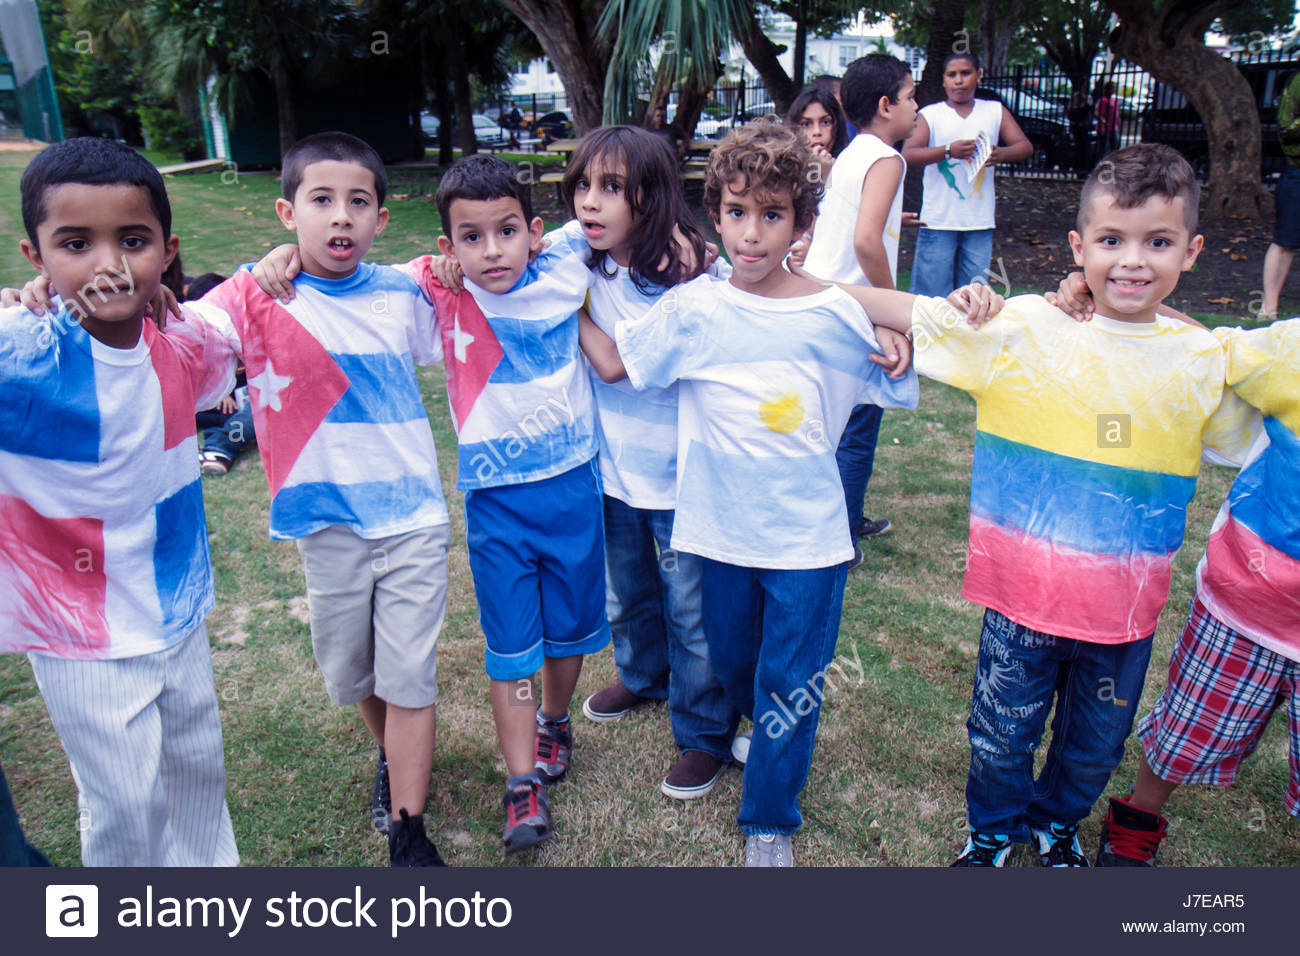 Miami Beach Florida North Beach Northshore Park Hispanic Heritage Festival boy group friends practice dance performers - Stock Image